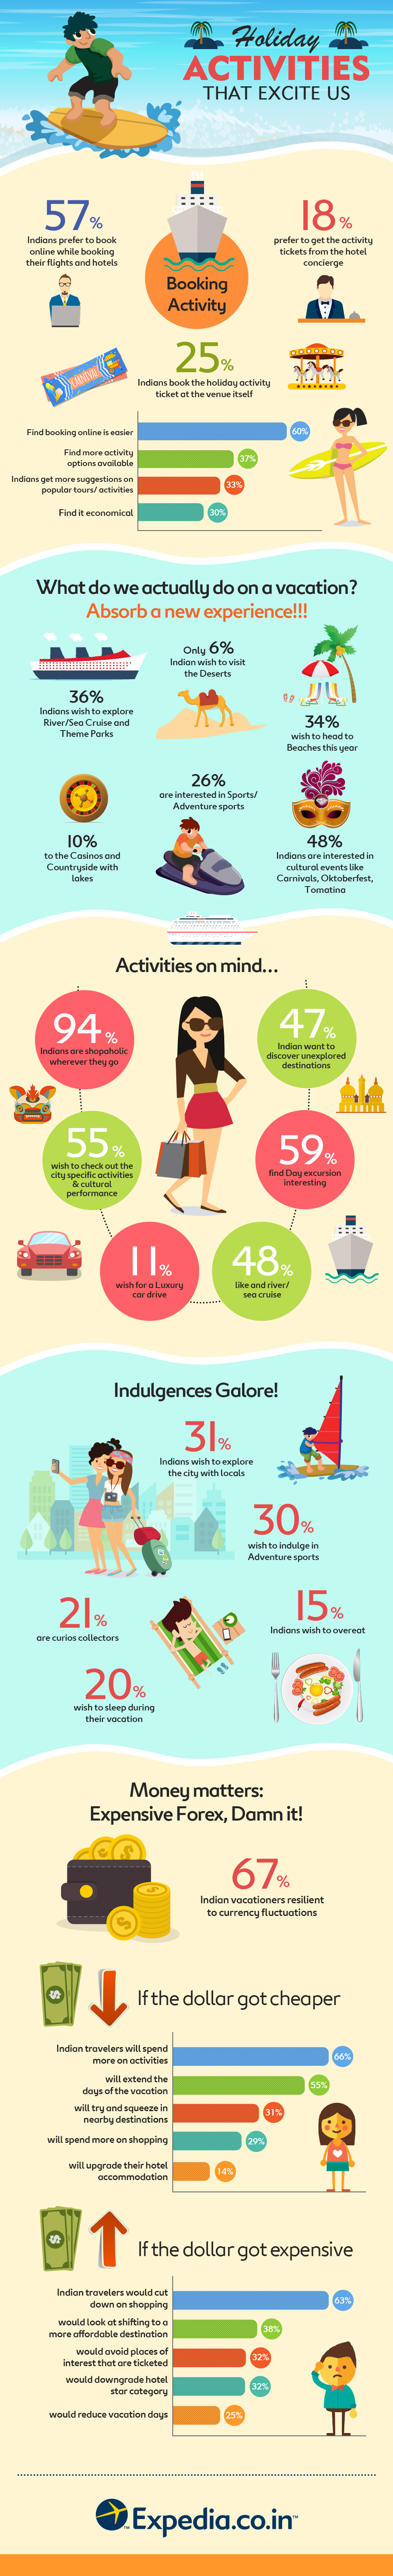 HolidayActivities_Infographic